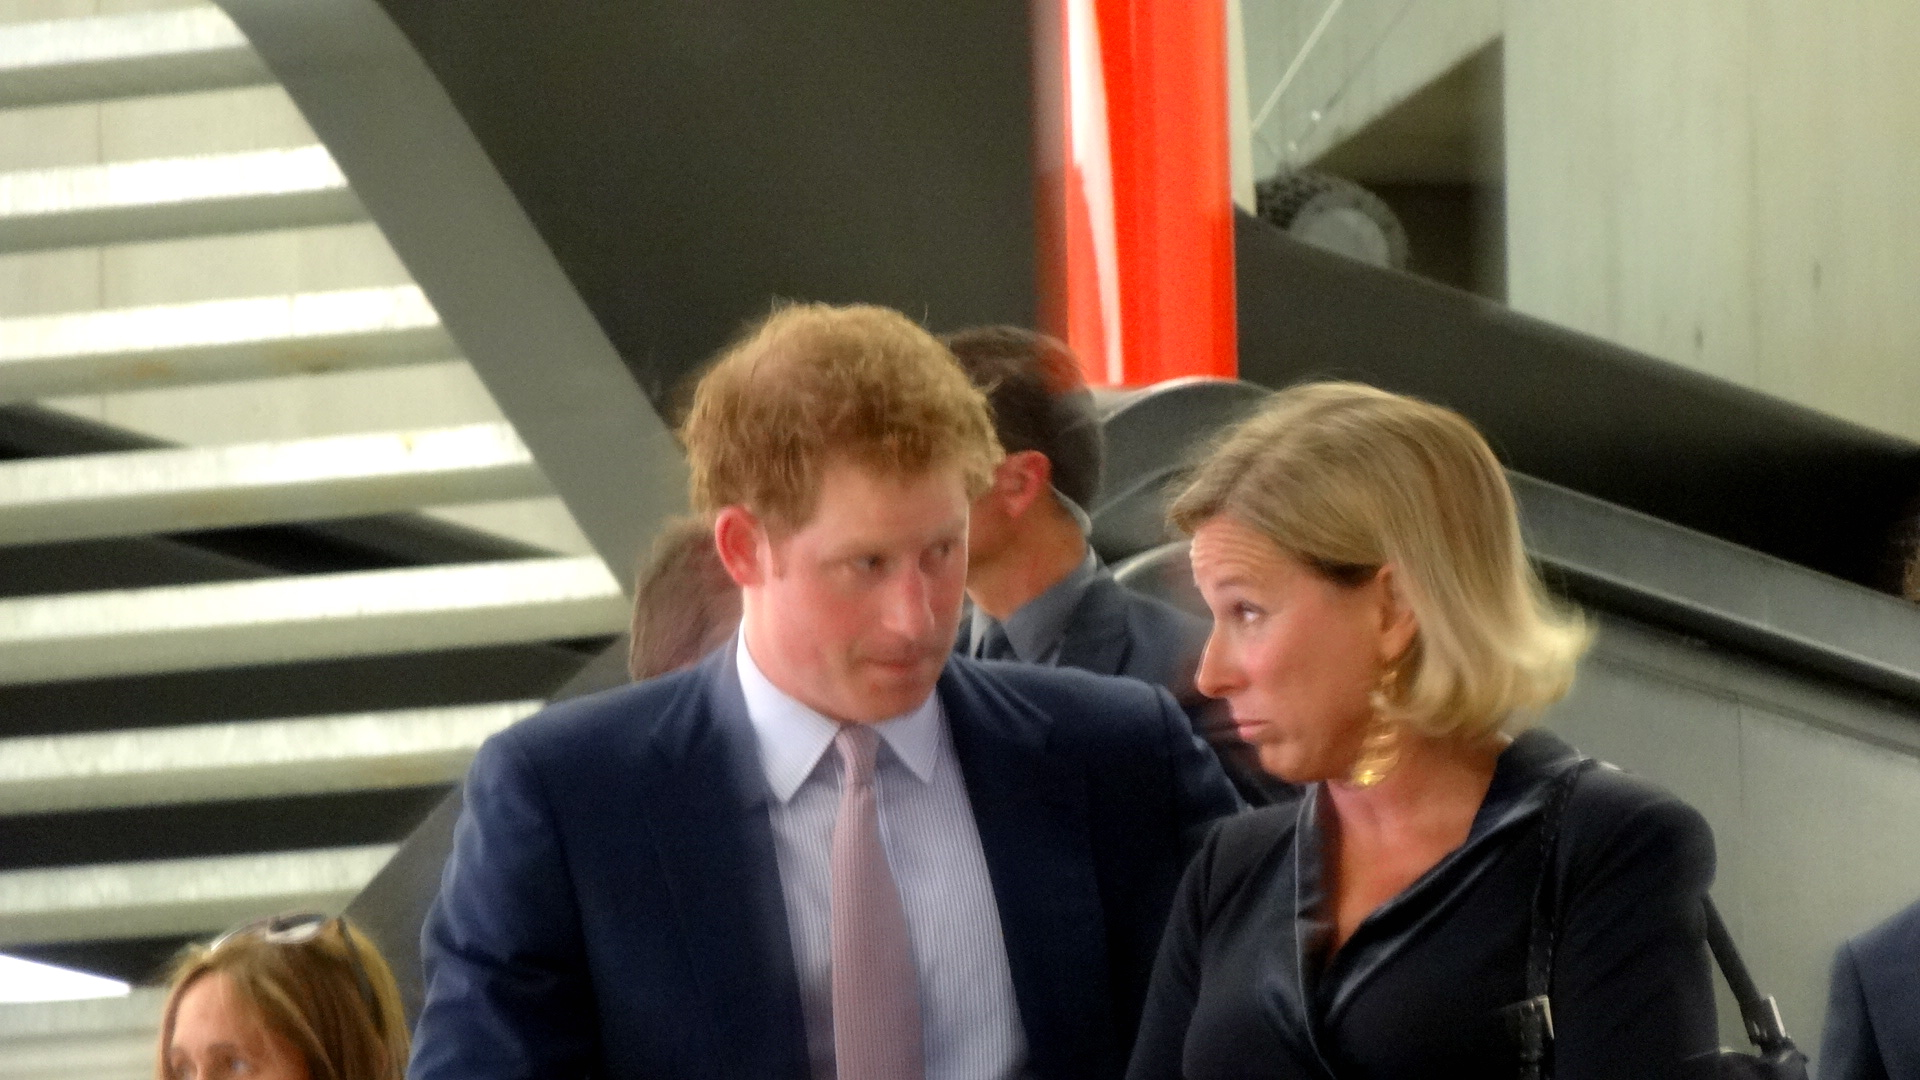 Stessa espressione (Principe Harry e Giovanna Melandri, presidente fondazione Maxxi) Same expression (Prince Harry and Giovanna Melandri, president of Maxxi foundation )